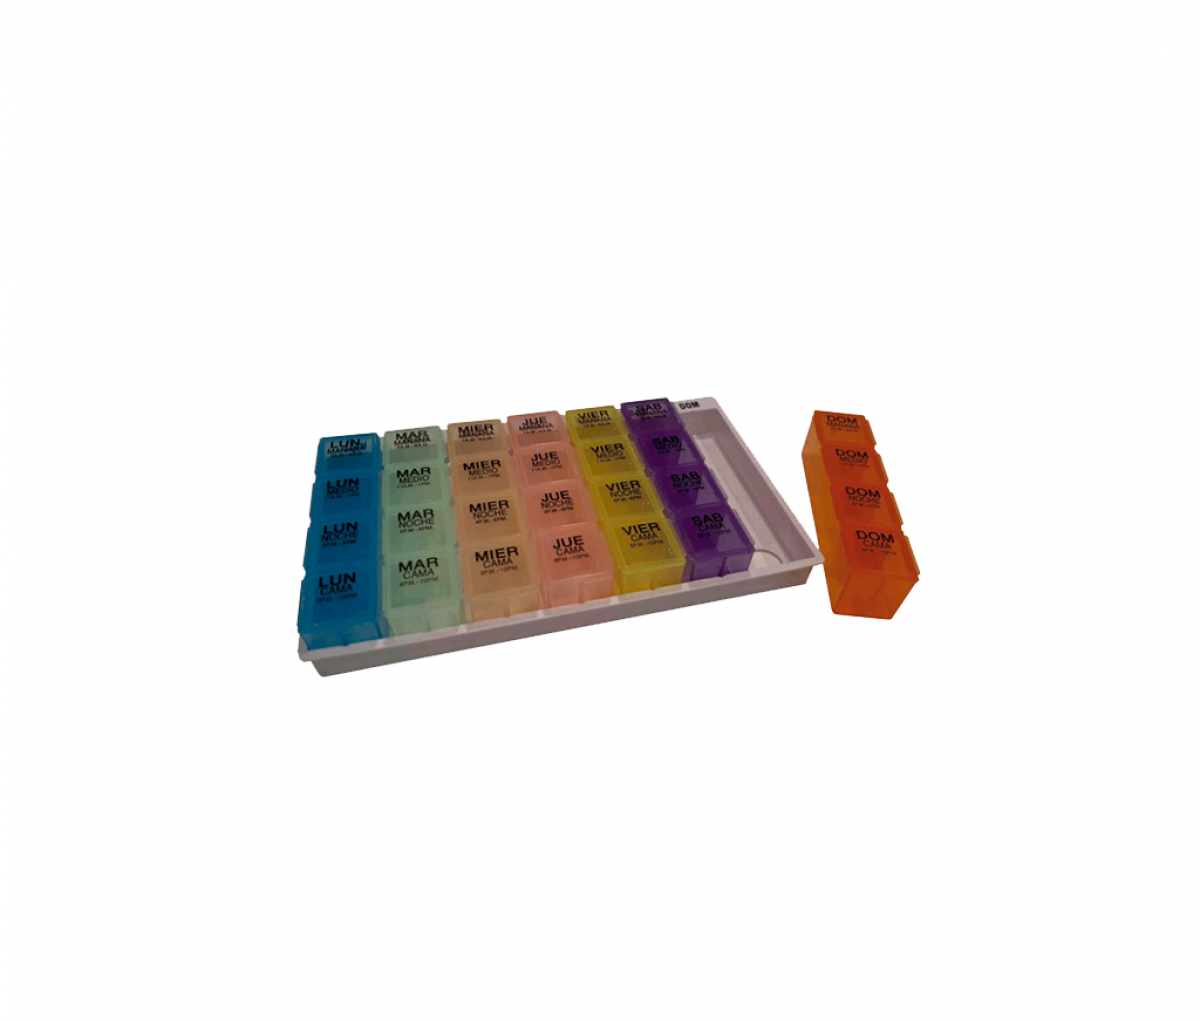 WEEKLY PILL ORGANISER 1 DOSE - LARGE 300458